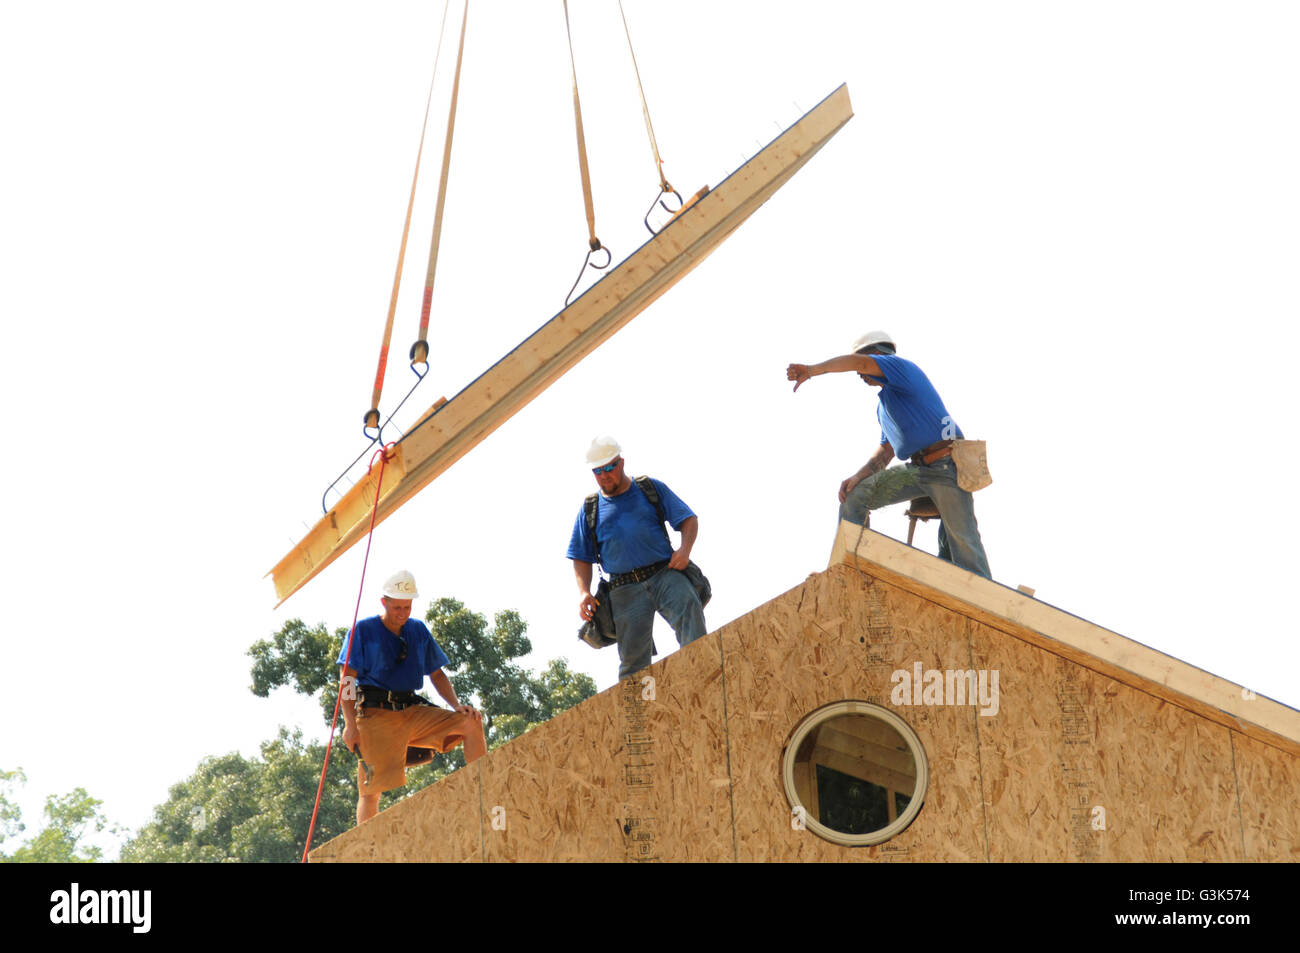 Extreme Makeover Stock Photos & Extreme Makeover Stock Images - Alamy